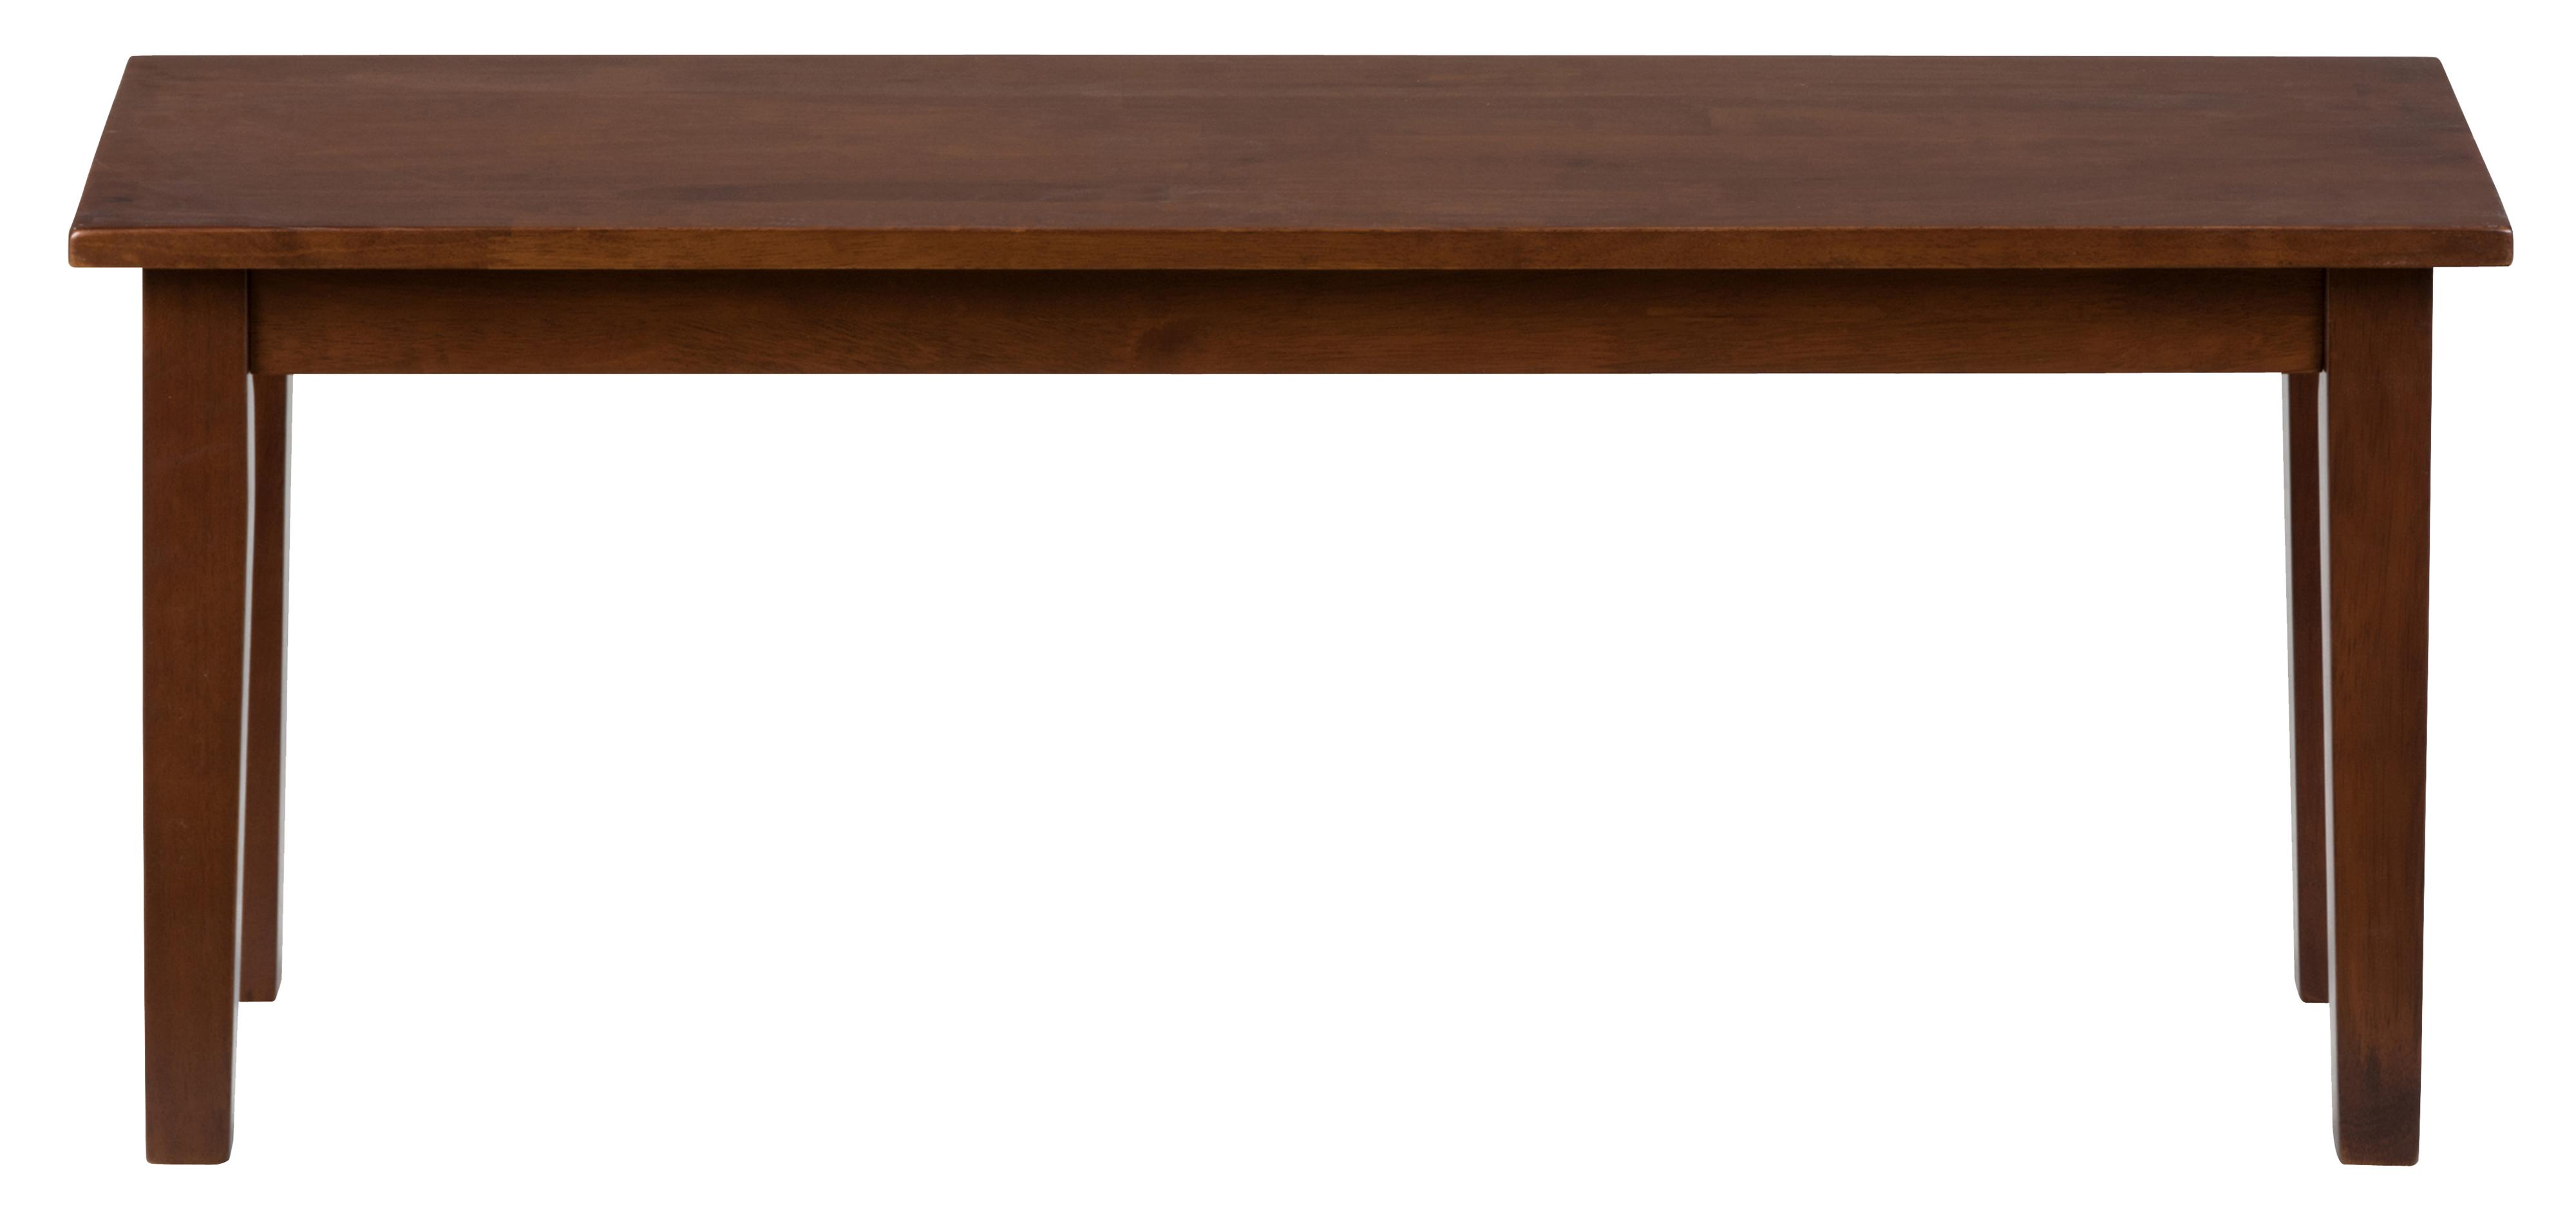 Jofran Simplicity Wooden Bench - Item Number: 452-14KD